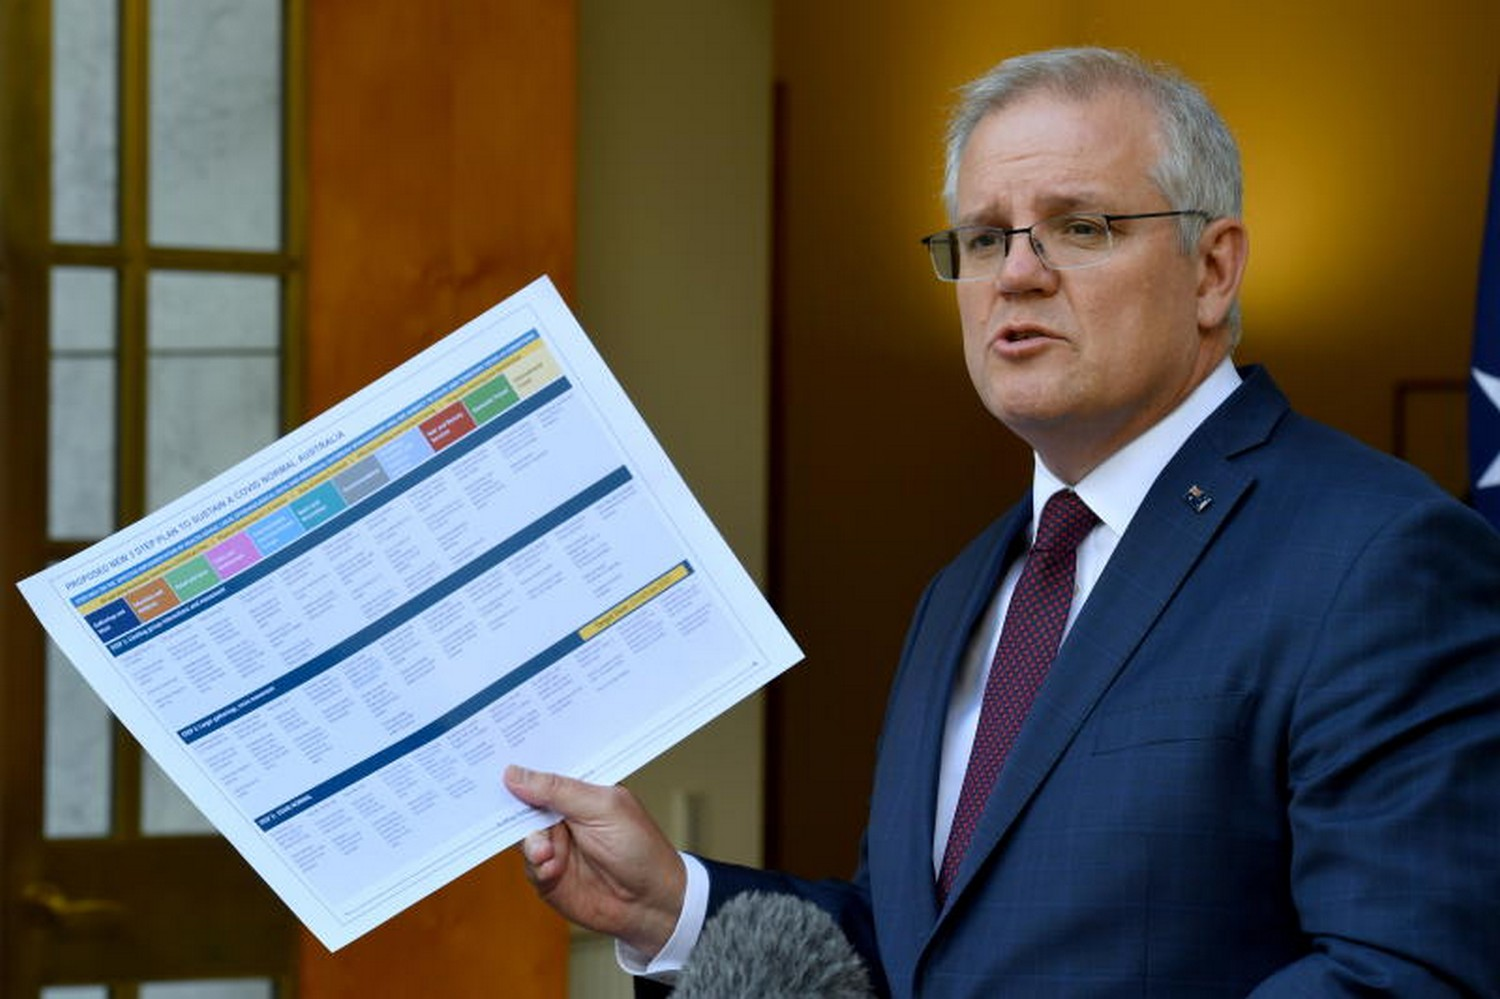 Australian Prime Minister Scott Morrison speaks at a press conference at Parliament House following a cabinet meeting on the potential easing of border restrictions and a national vaccine strategy, as the coronavirus disease outbreak eases around the country, in Canberra on Friday. (Photo: Reuters)